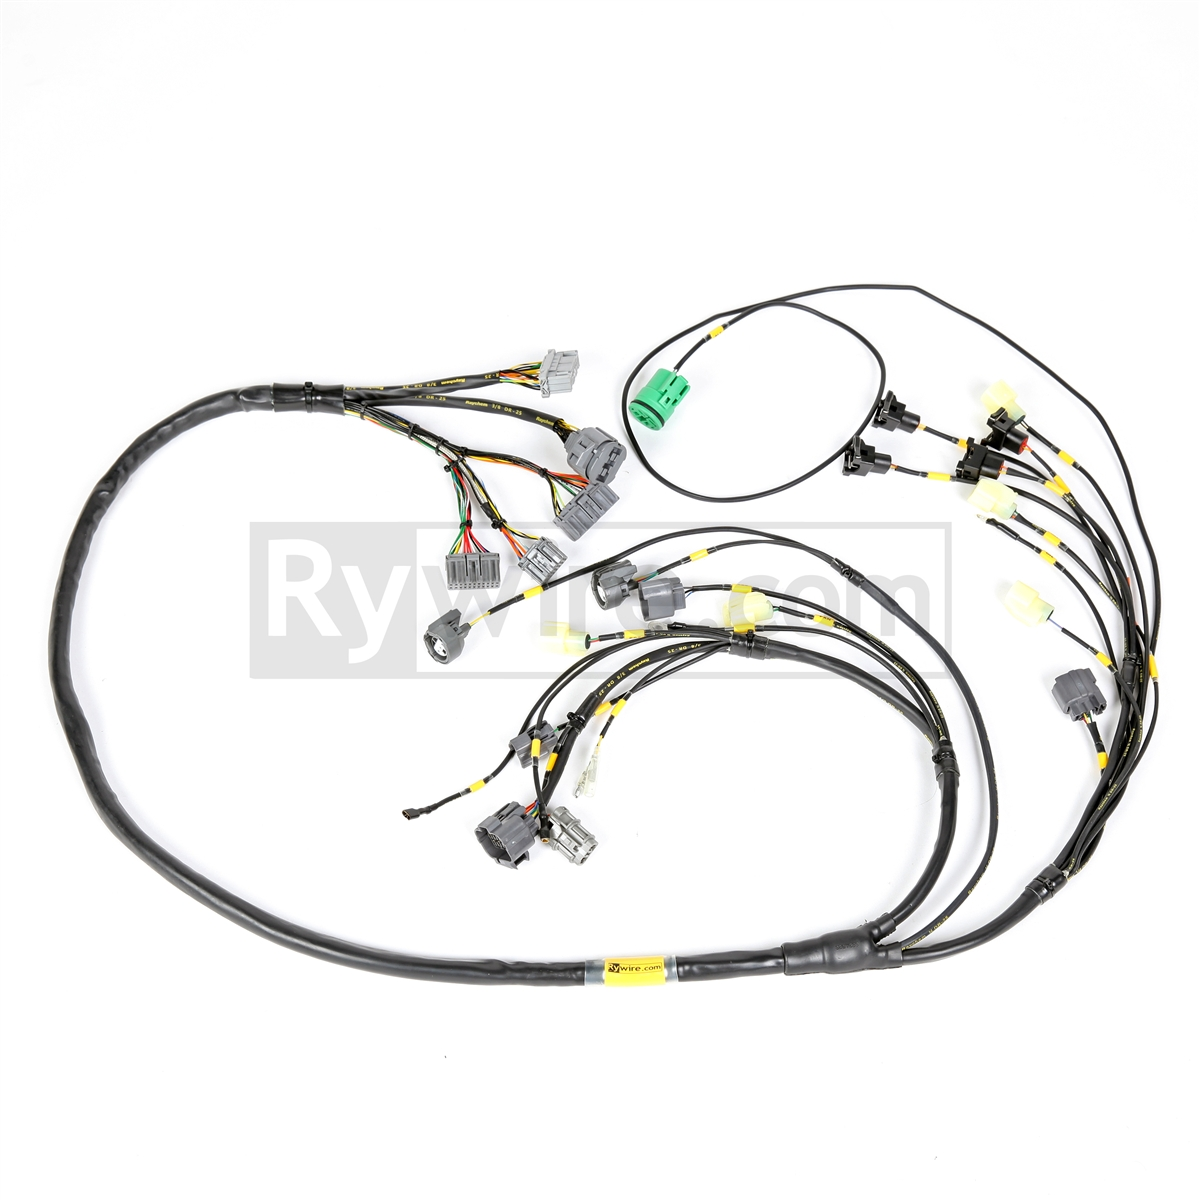 H1 Milspec 2?1402582650 f20b wiring harness b18b1 wiring harness \u2022 wiring diagrams j 4.6 DOHC Cobra at bakdesigns.co